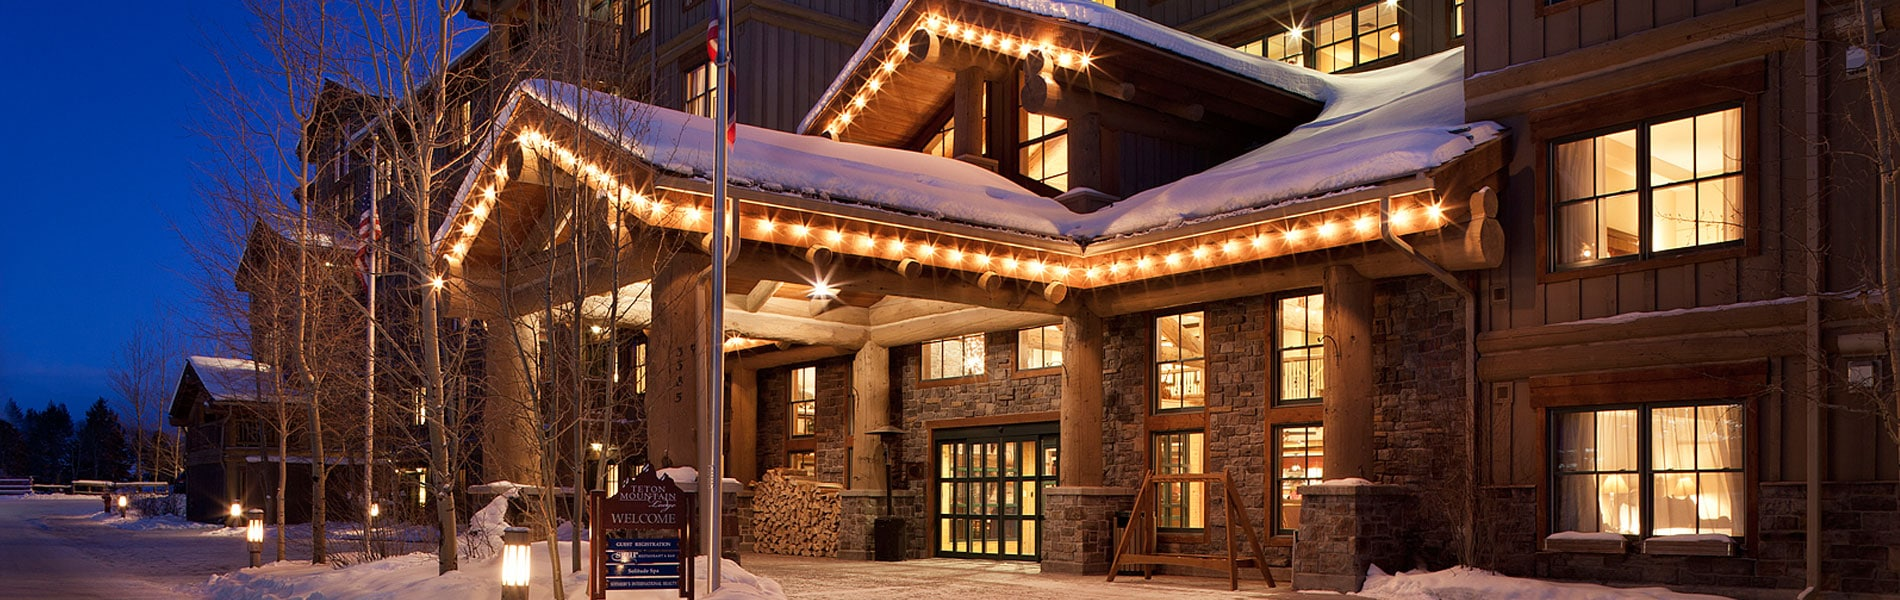 Teton Mountain Lodge exterior with Christmas lights